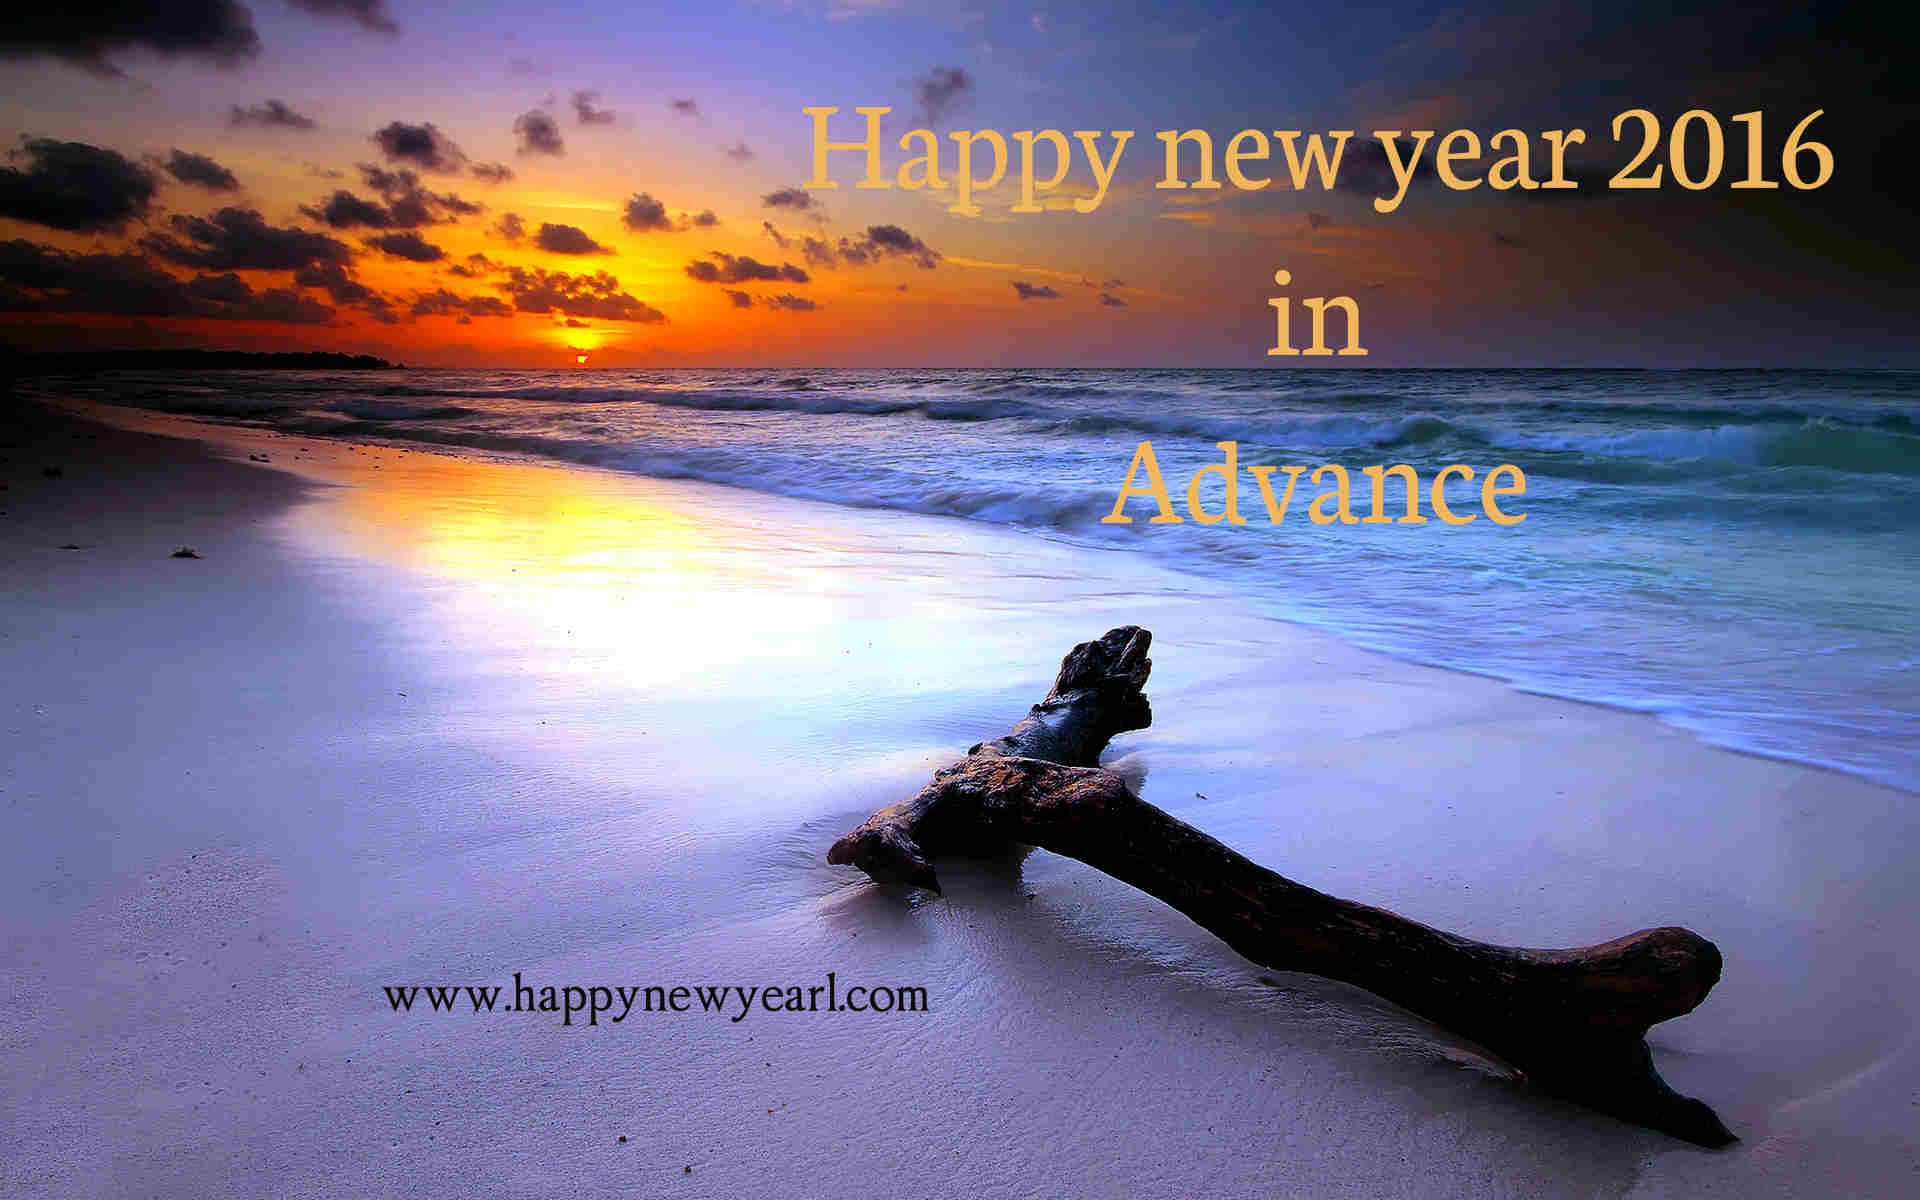 advance happy new year 2016 hd wallpaper for computer desktop